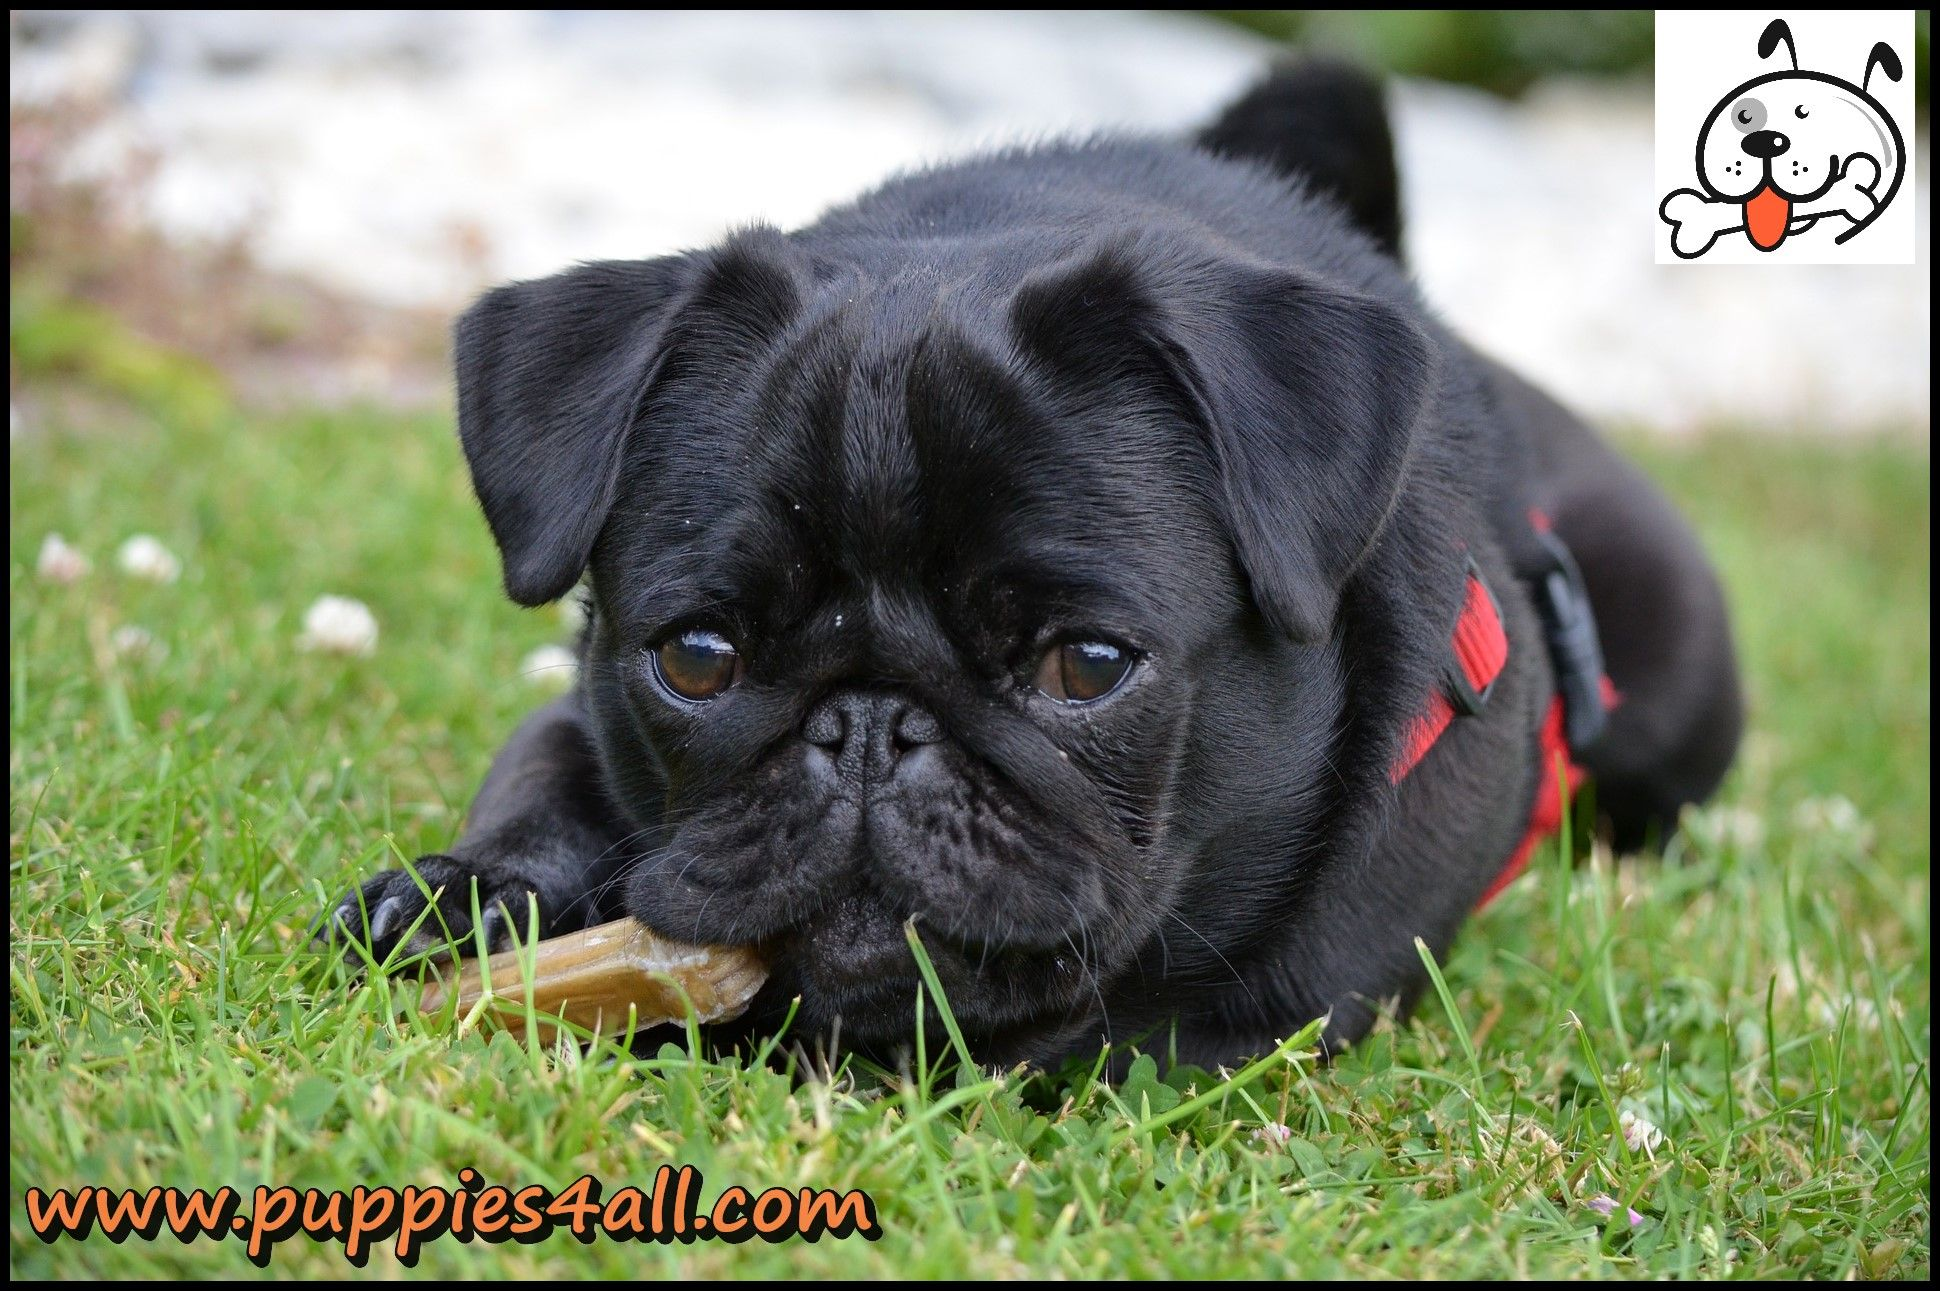 Pin By Puppies4all On 3 Pugs Puppies4all 3 Black Pug Puppies